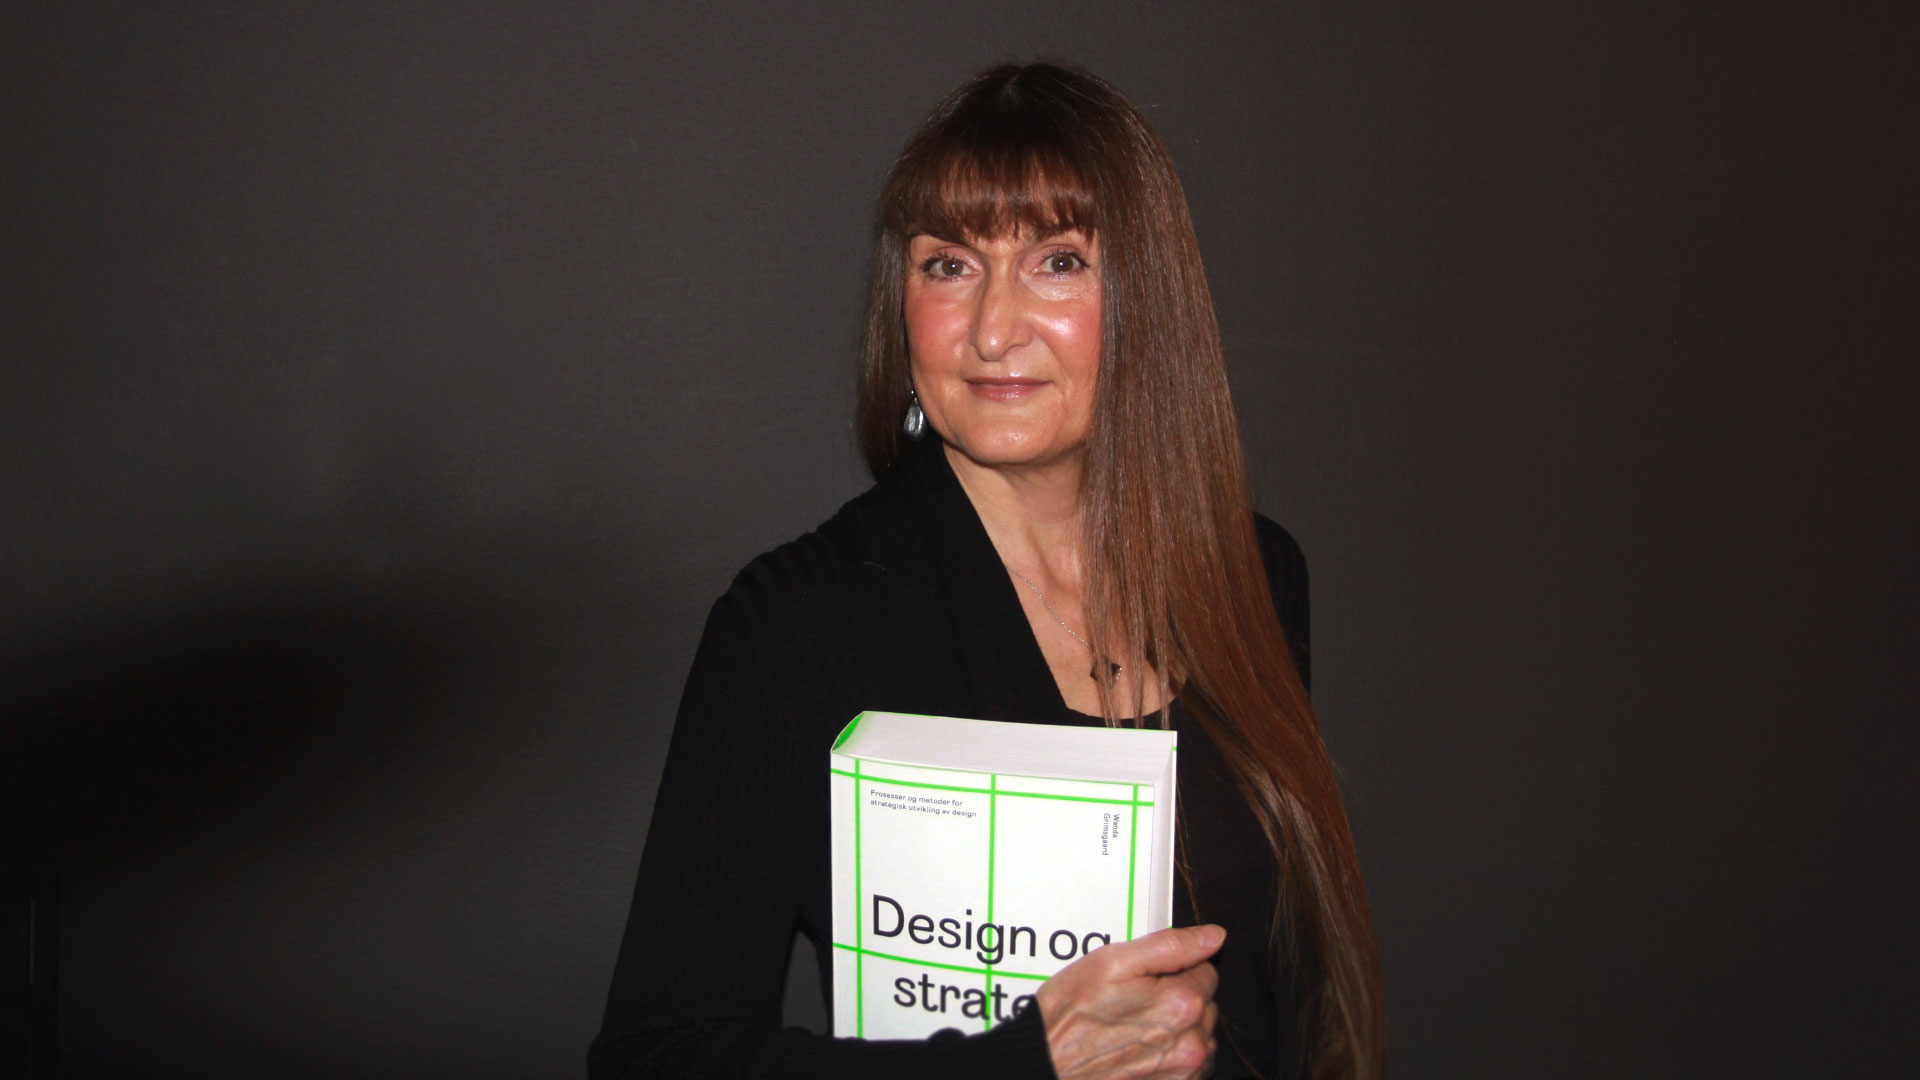 """""""Design og strategi"""" [Design and Strategy] by Wanda Grimsgaard is a primer on strategy and design. Photo by Sidsel Lie."""